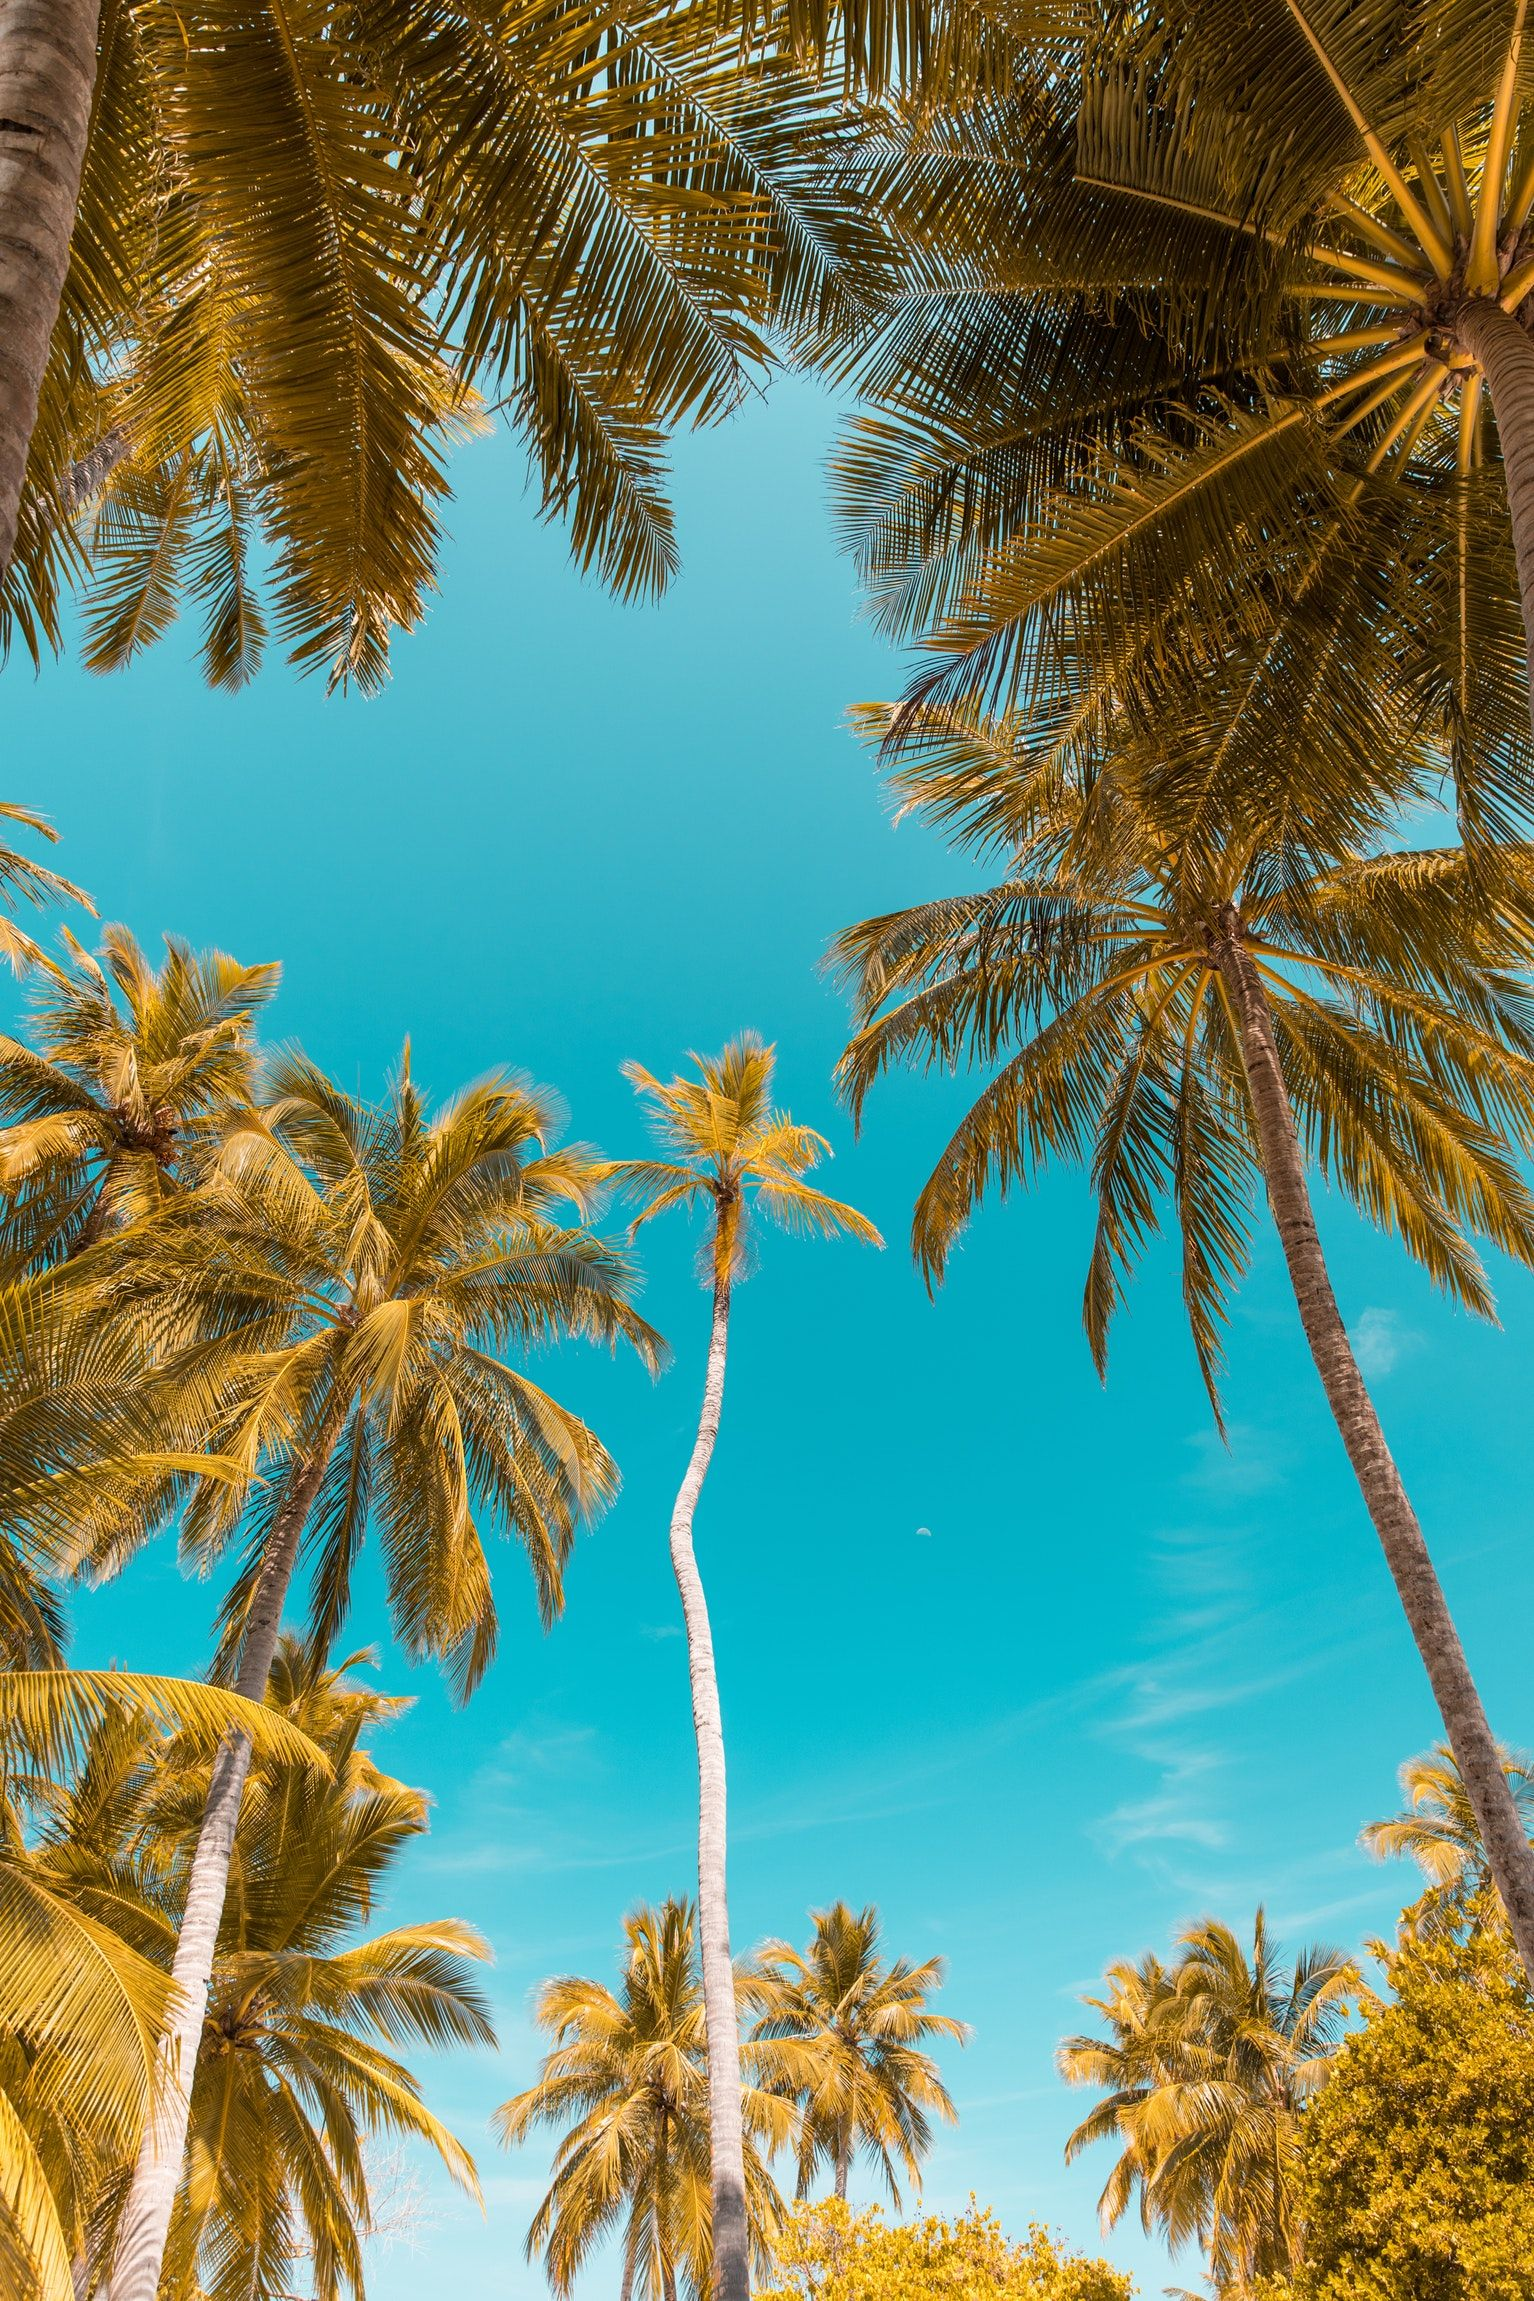 Nature And Tree Hd Photo By Mohamed Nashah Nashah On Unsplash Palm Trees Wallpaper Tree Wallpaper Iphone Beach Wallpaper Iphone